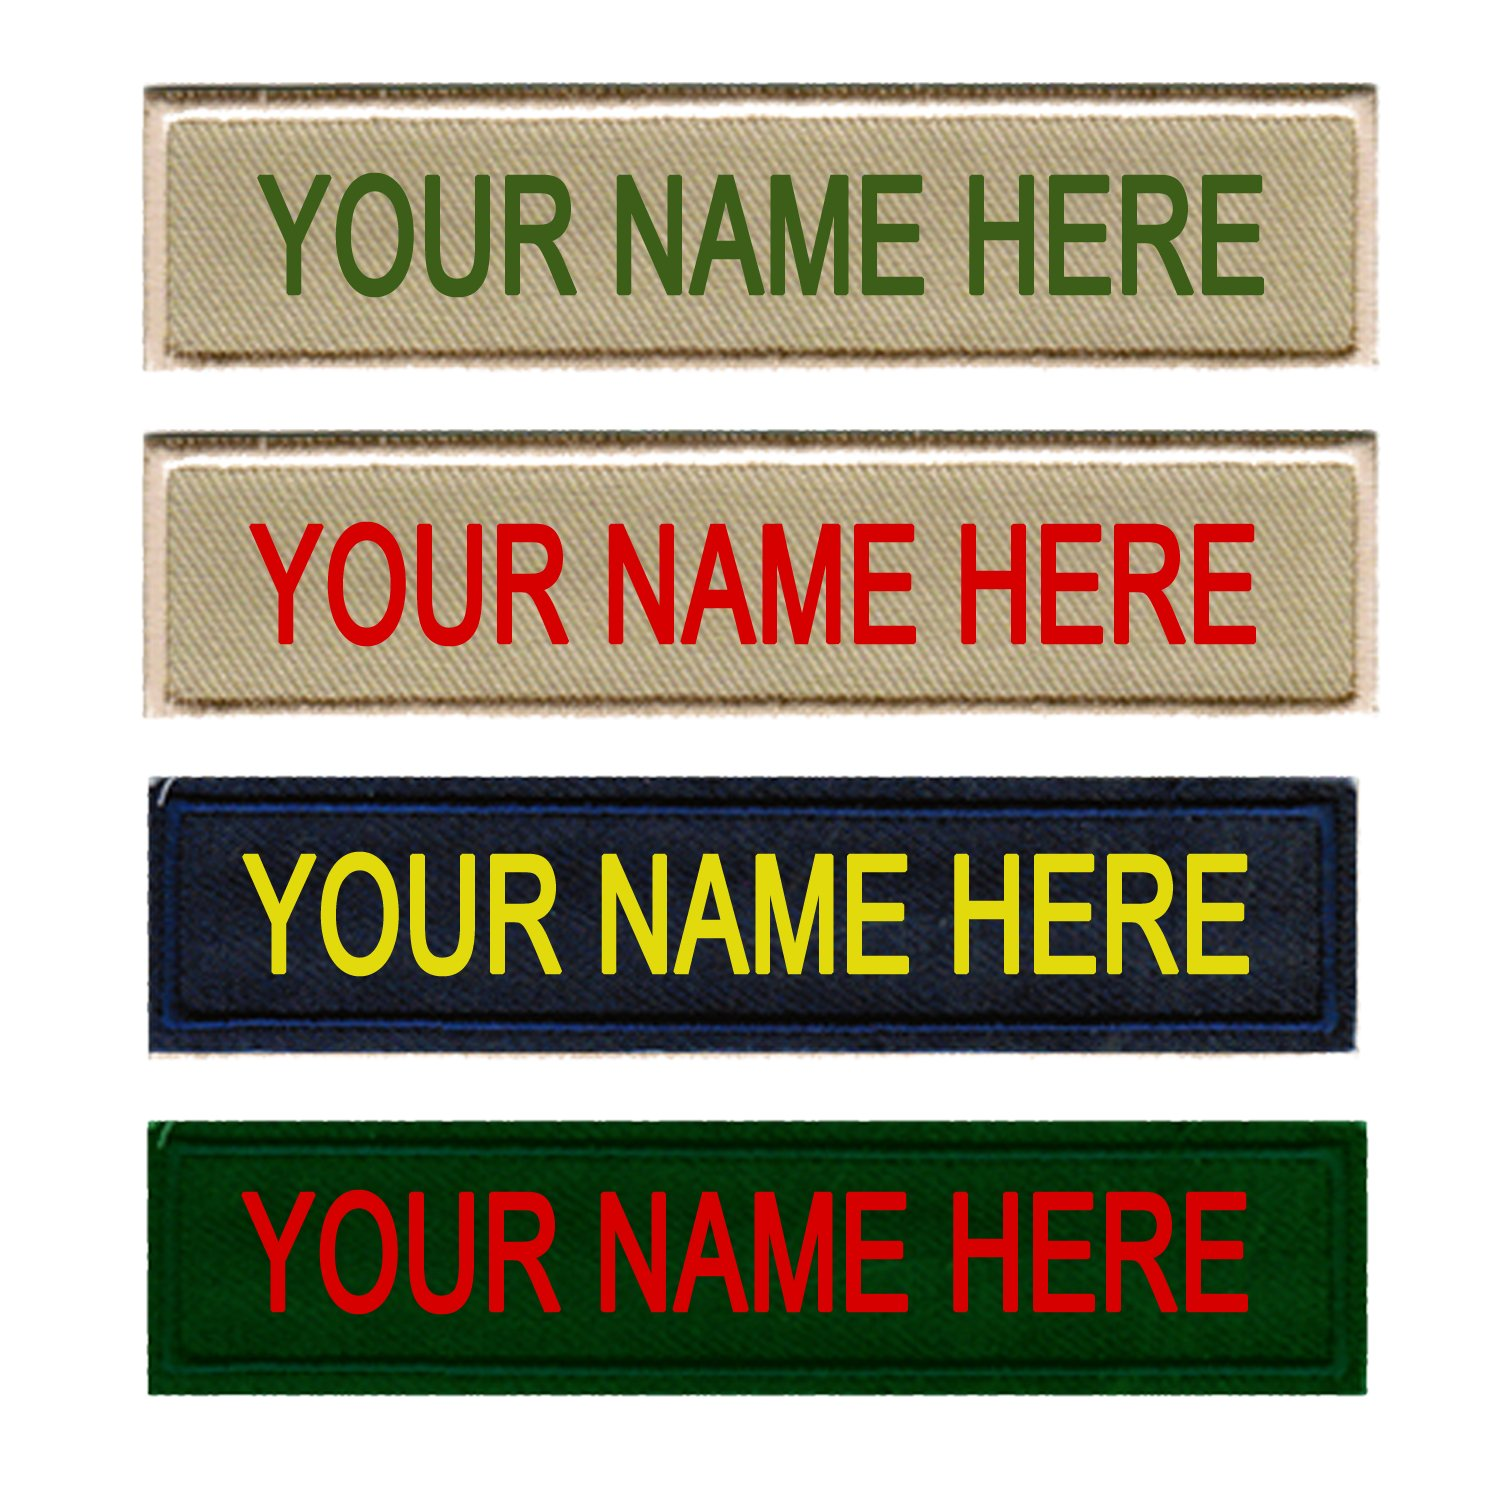 12 PIECES Custom Embroidered Scouts Name Tag Identification Badge Nametag for Uniform by Basics Clothing Store